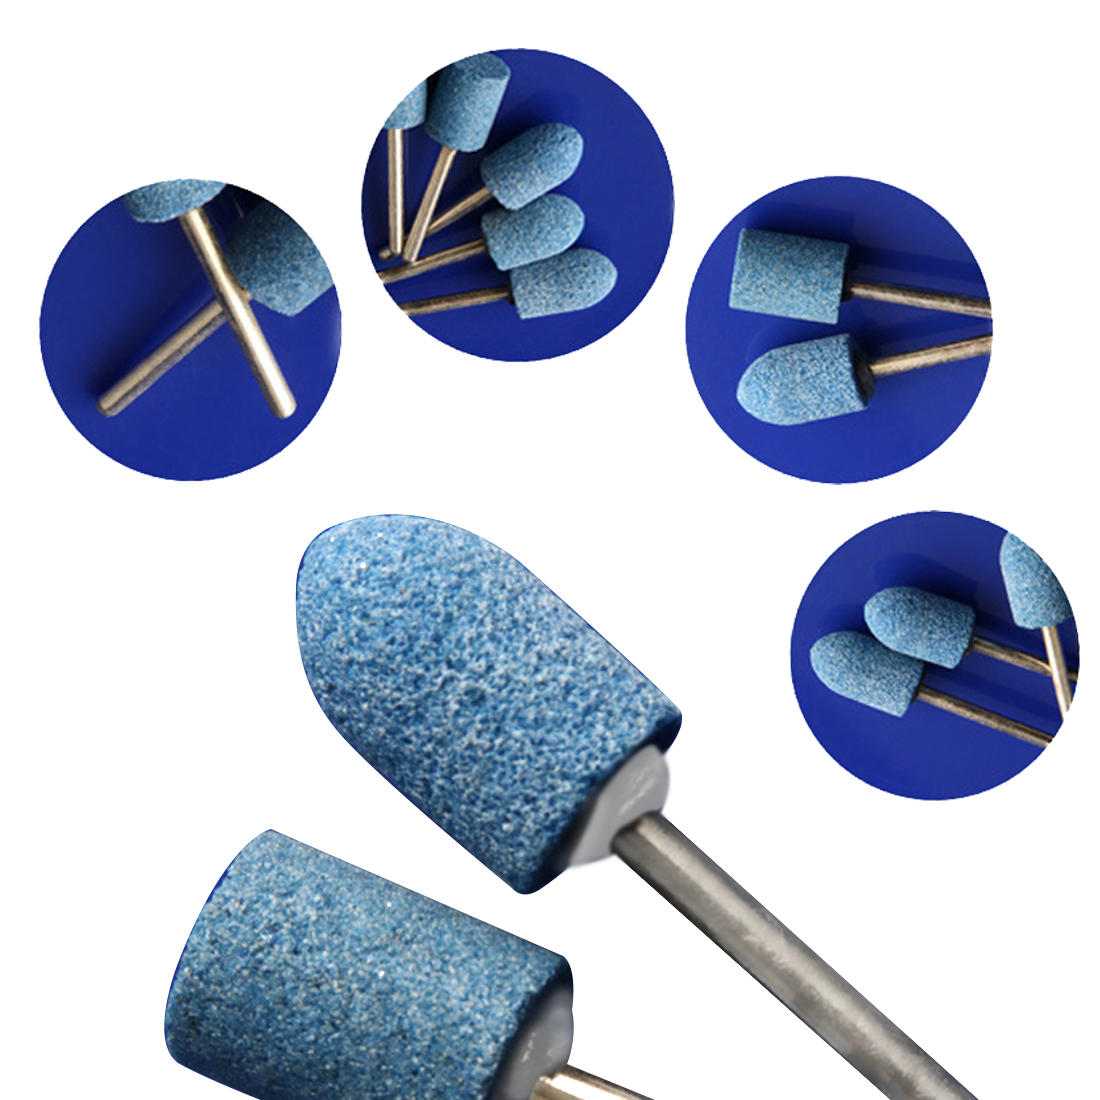 10pc Blue Abrasive Mounted Stone Set Multi Tool Grinding Burr Wheel La Rueda De Moler Burr 1/8 Shank For Dremel 4000 3000